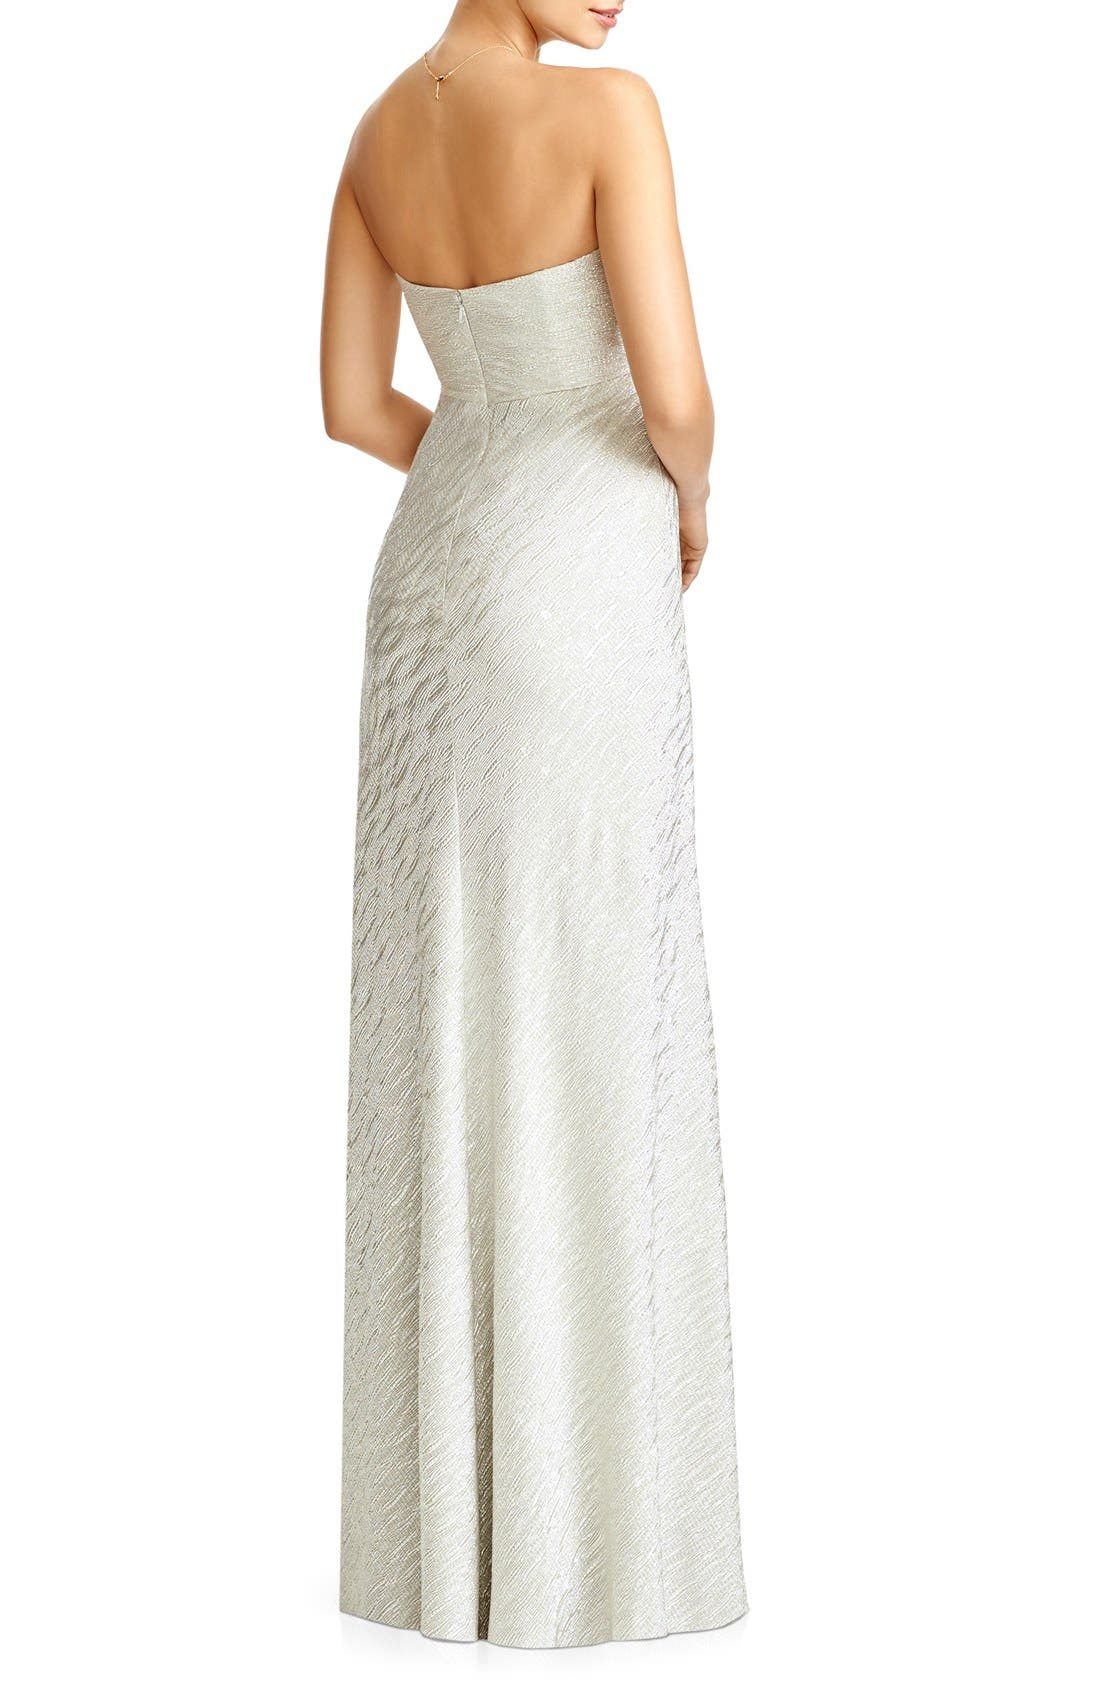 'Soho' Metallic Strapless Empire Waist Gown,                             Alternate thumbnail 2, color,                             CHAMPAGNE SILVER